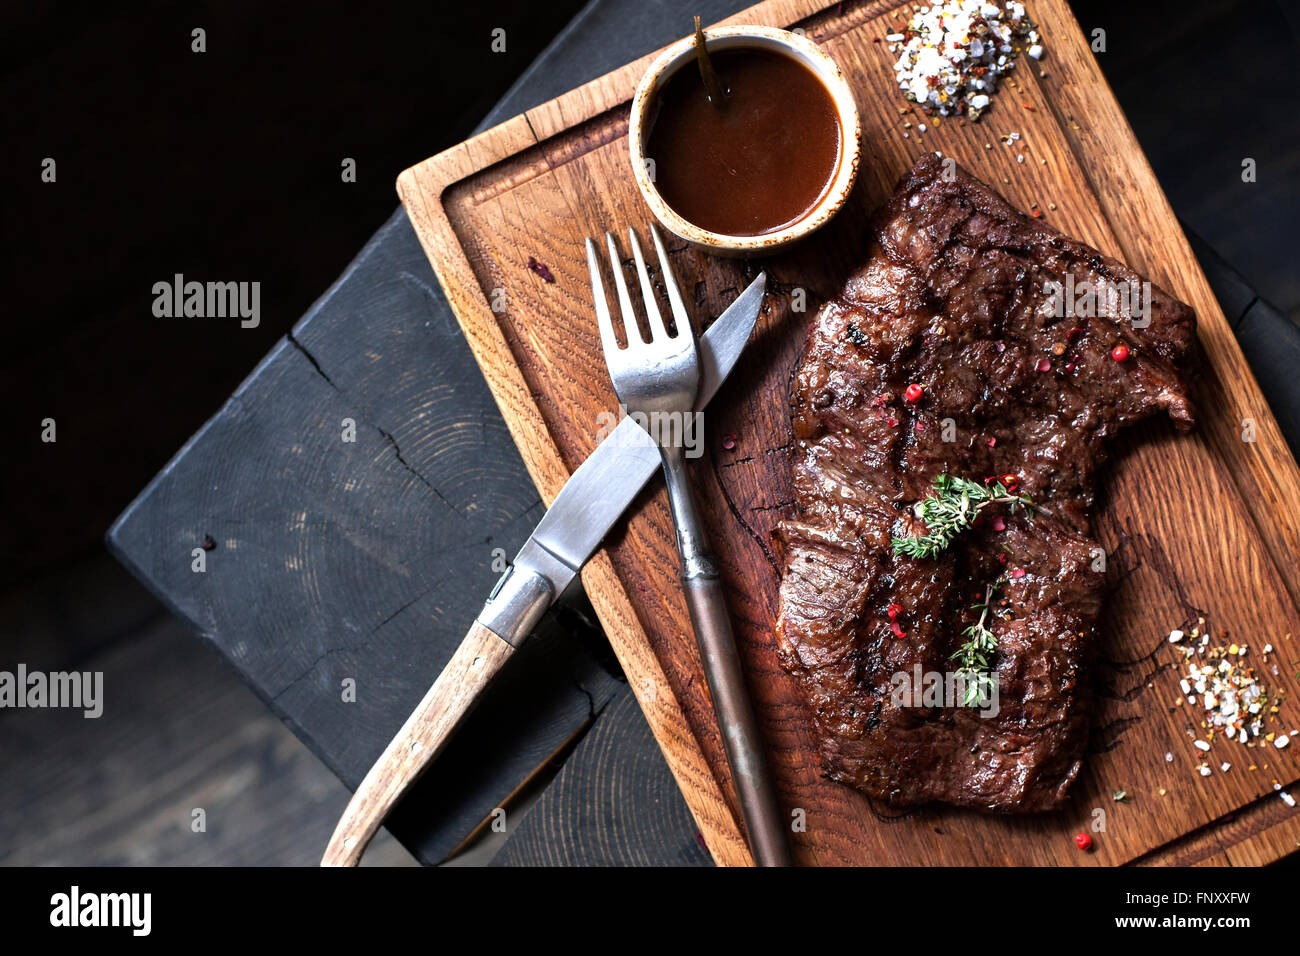 Beefsteak. Piece of grilled BBQ beef marinated in spices and herbs on rustic wooden board over rough wooden desk - Stock Image